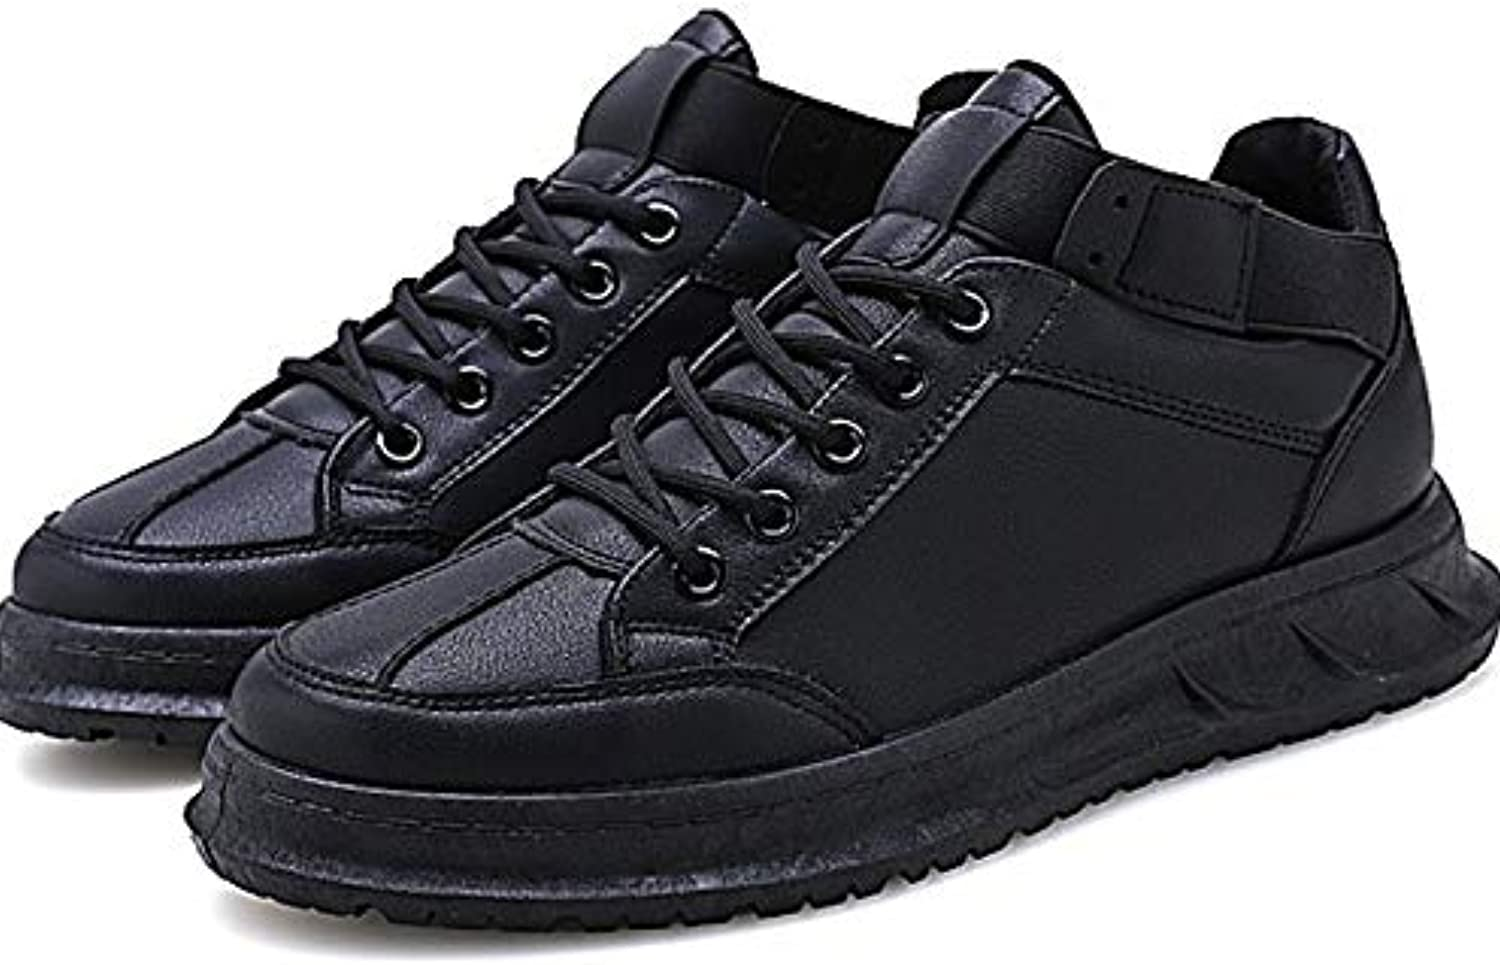 Anstorematealliance Outdoor&Sports shoes Round Head Lace-up Lightweight Casual shoes for Men (color Black Size 39)